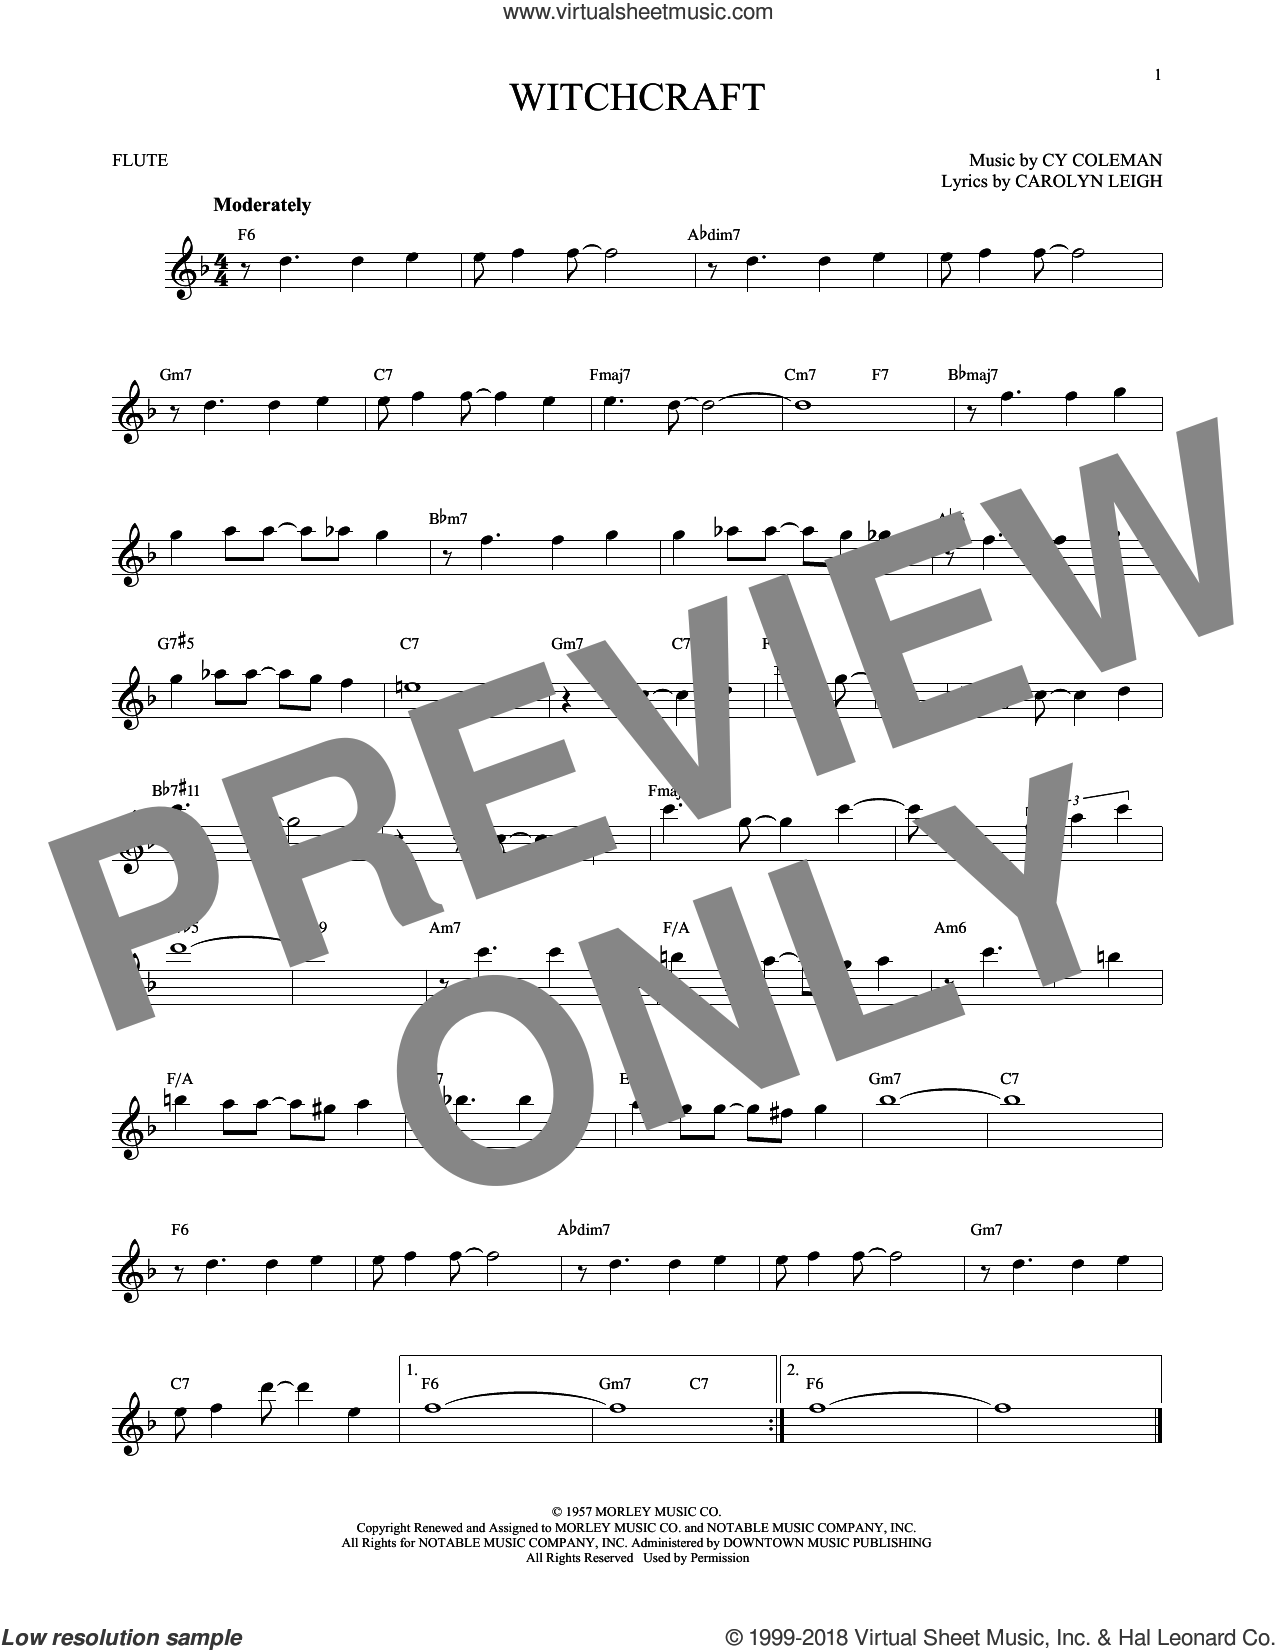 Witchcraft sheet music for flute solo by Cy Coleman and Carolyn Leigh, intermediate skill level